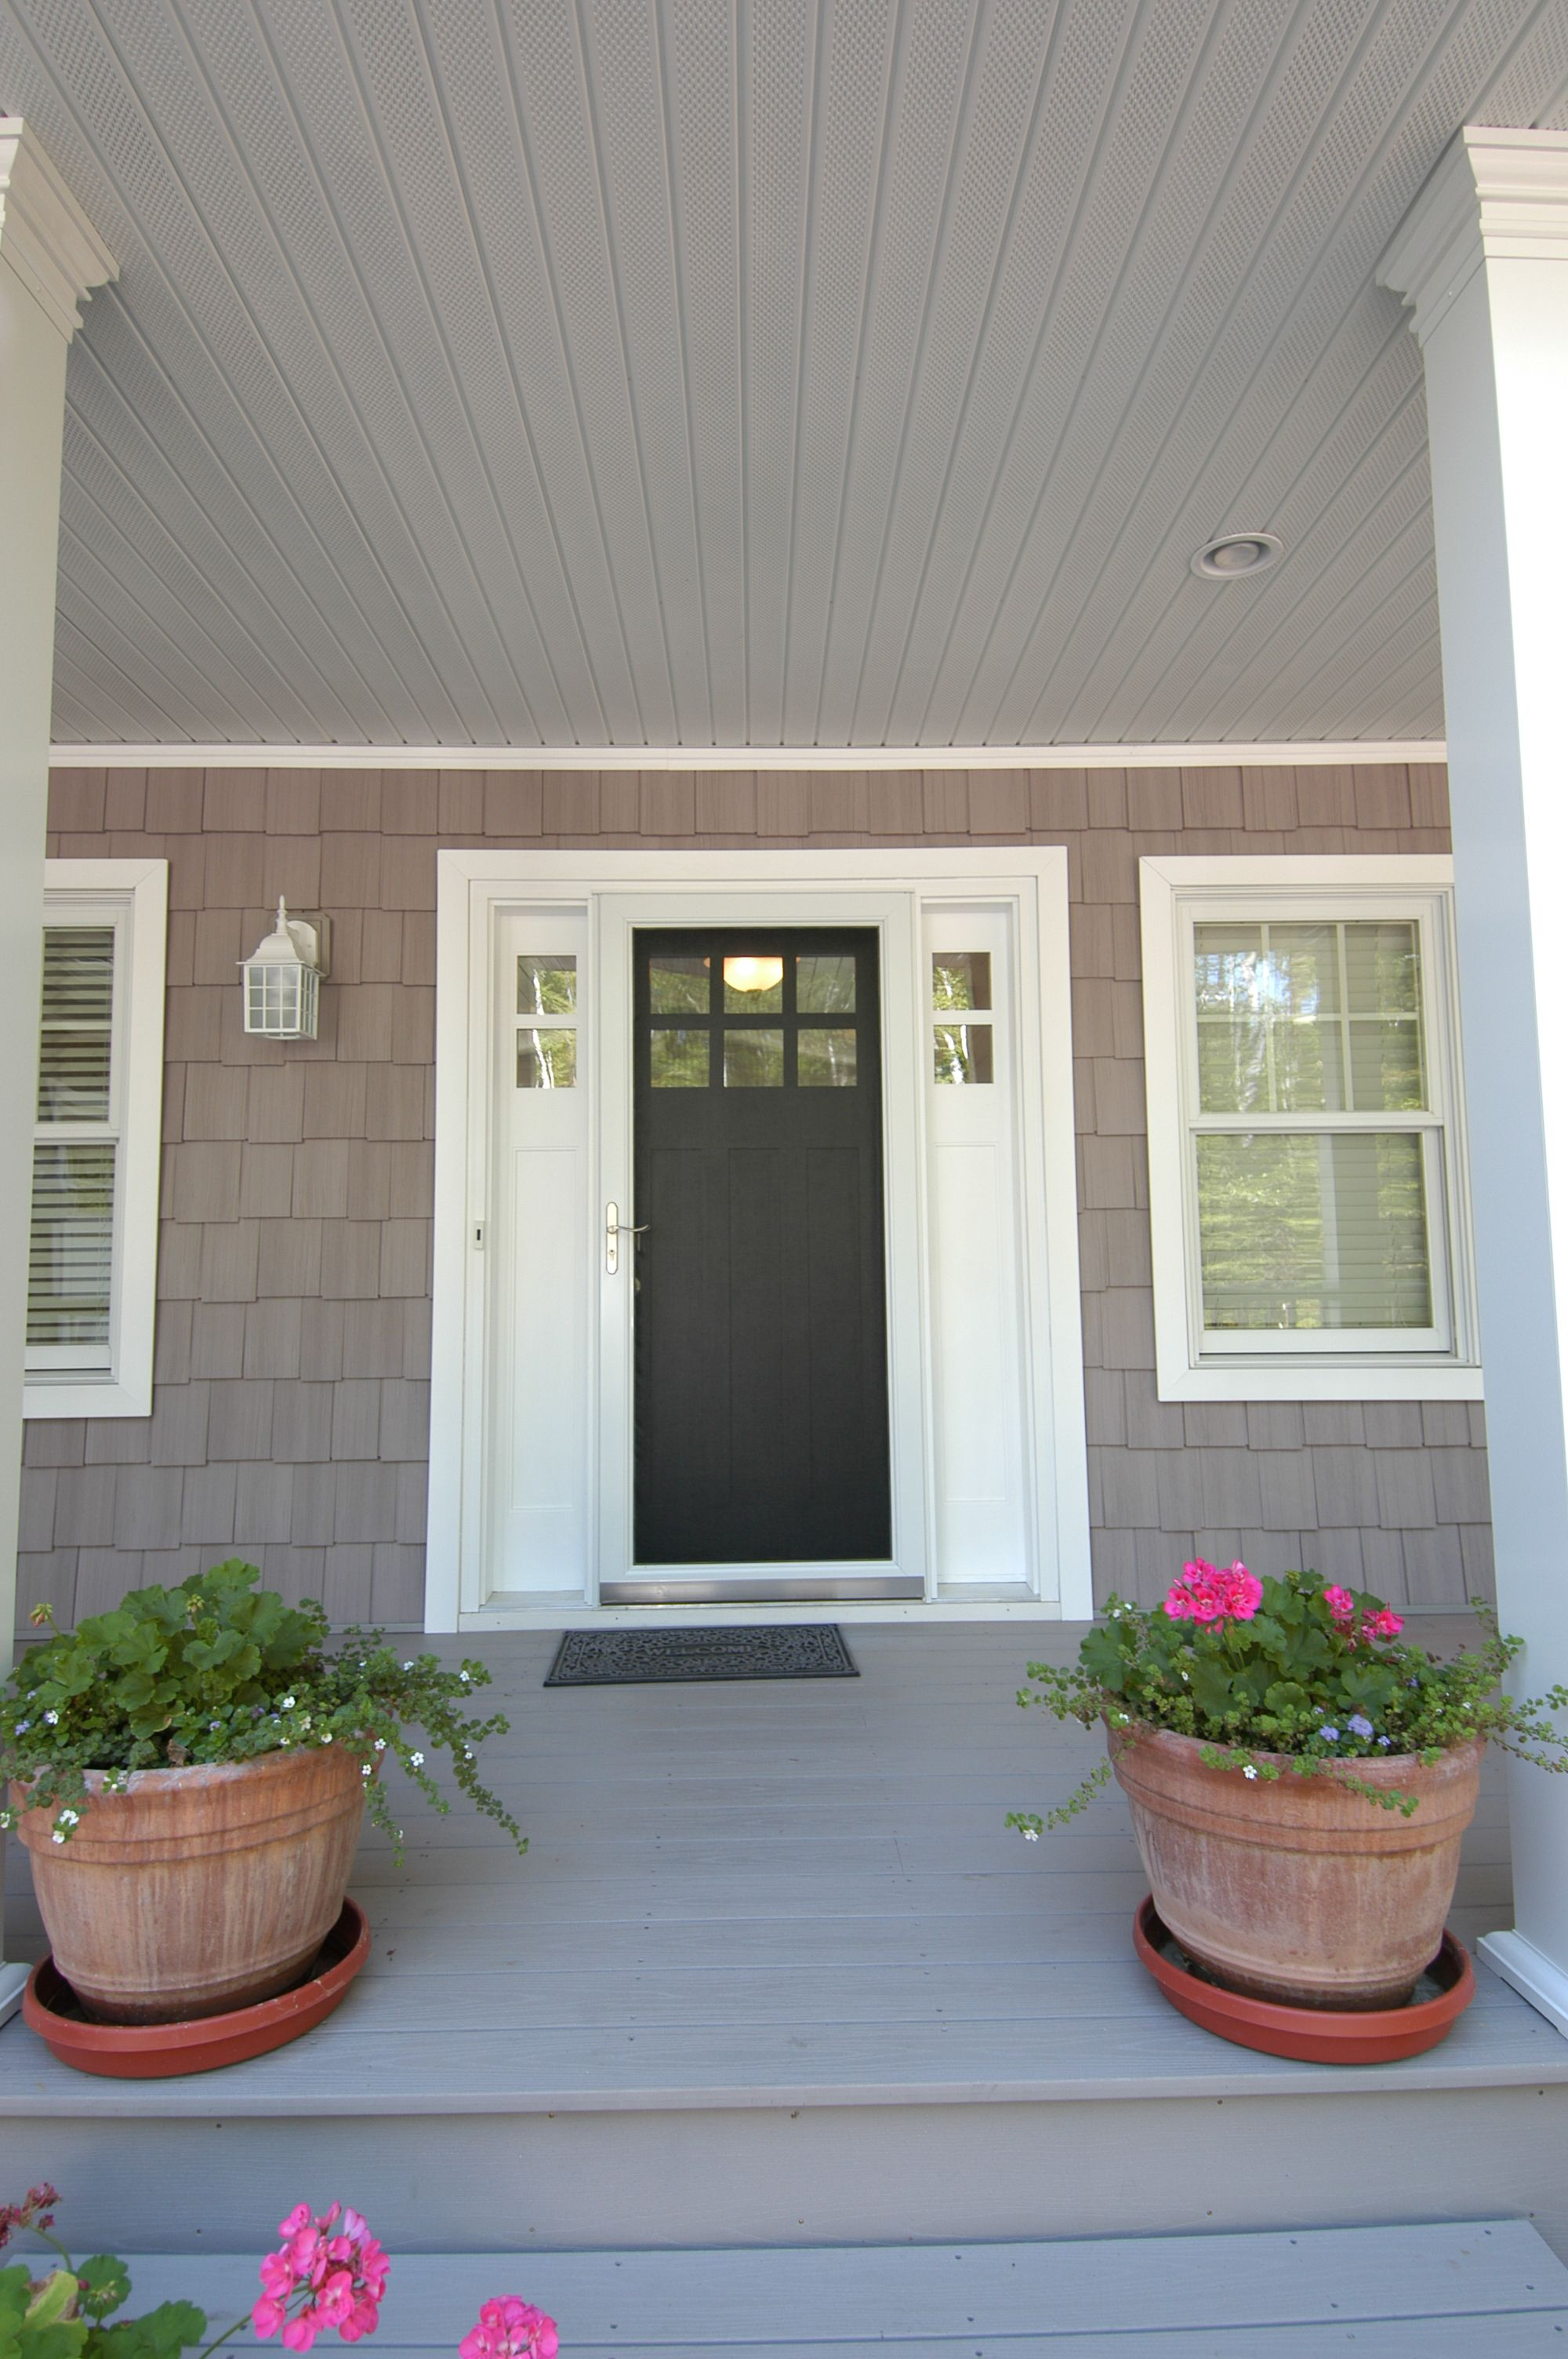 Craftsman front door with sidelights - Painted Wood Craftsman Front Door With A Sidelight On Each Side